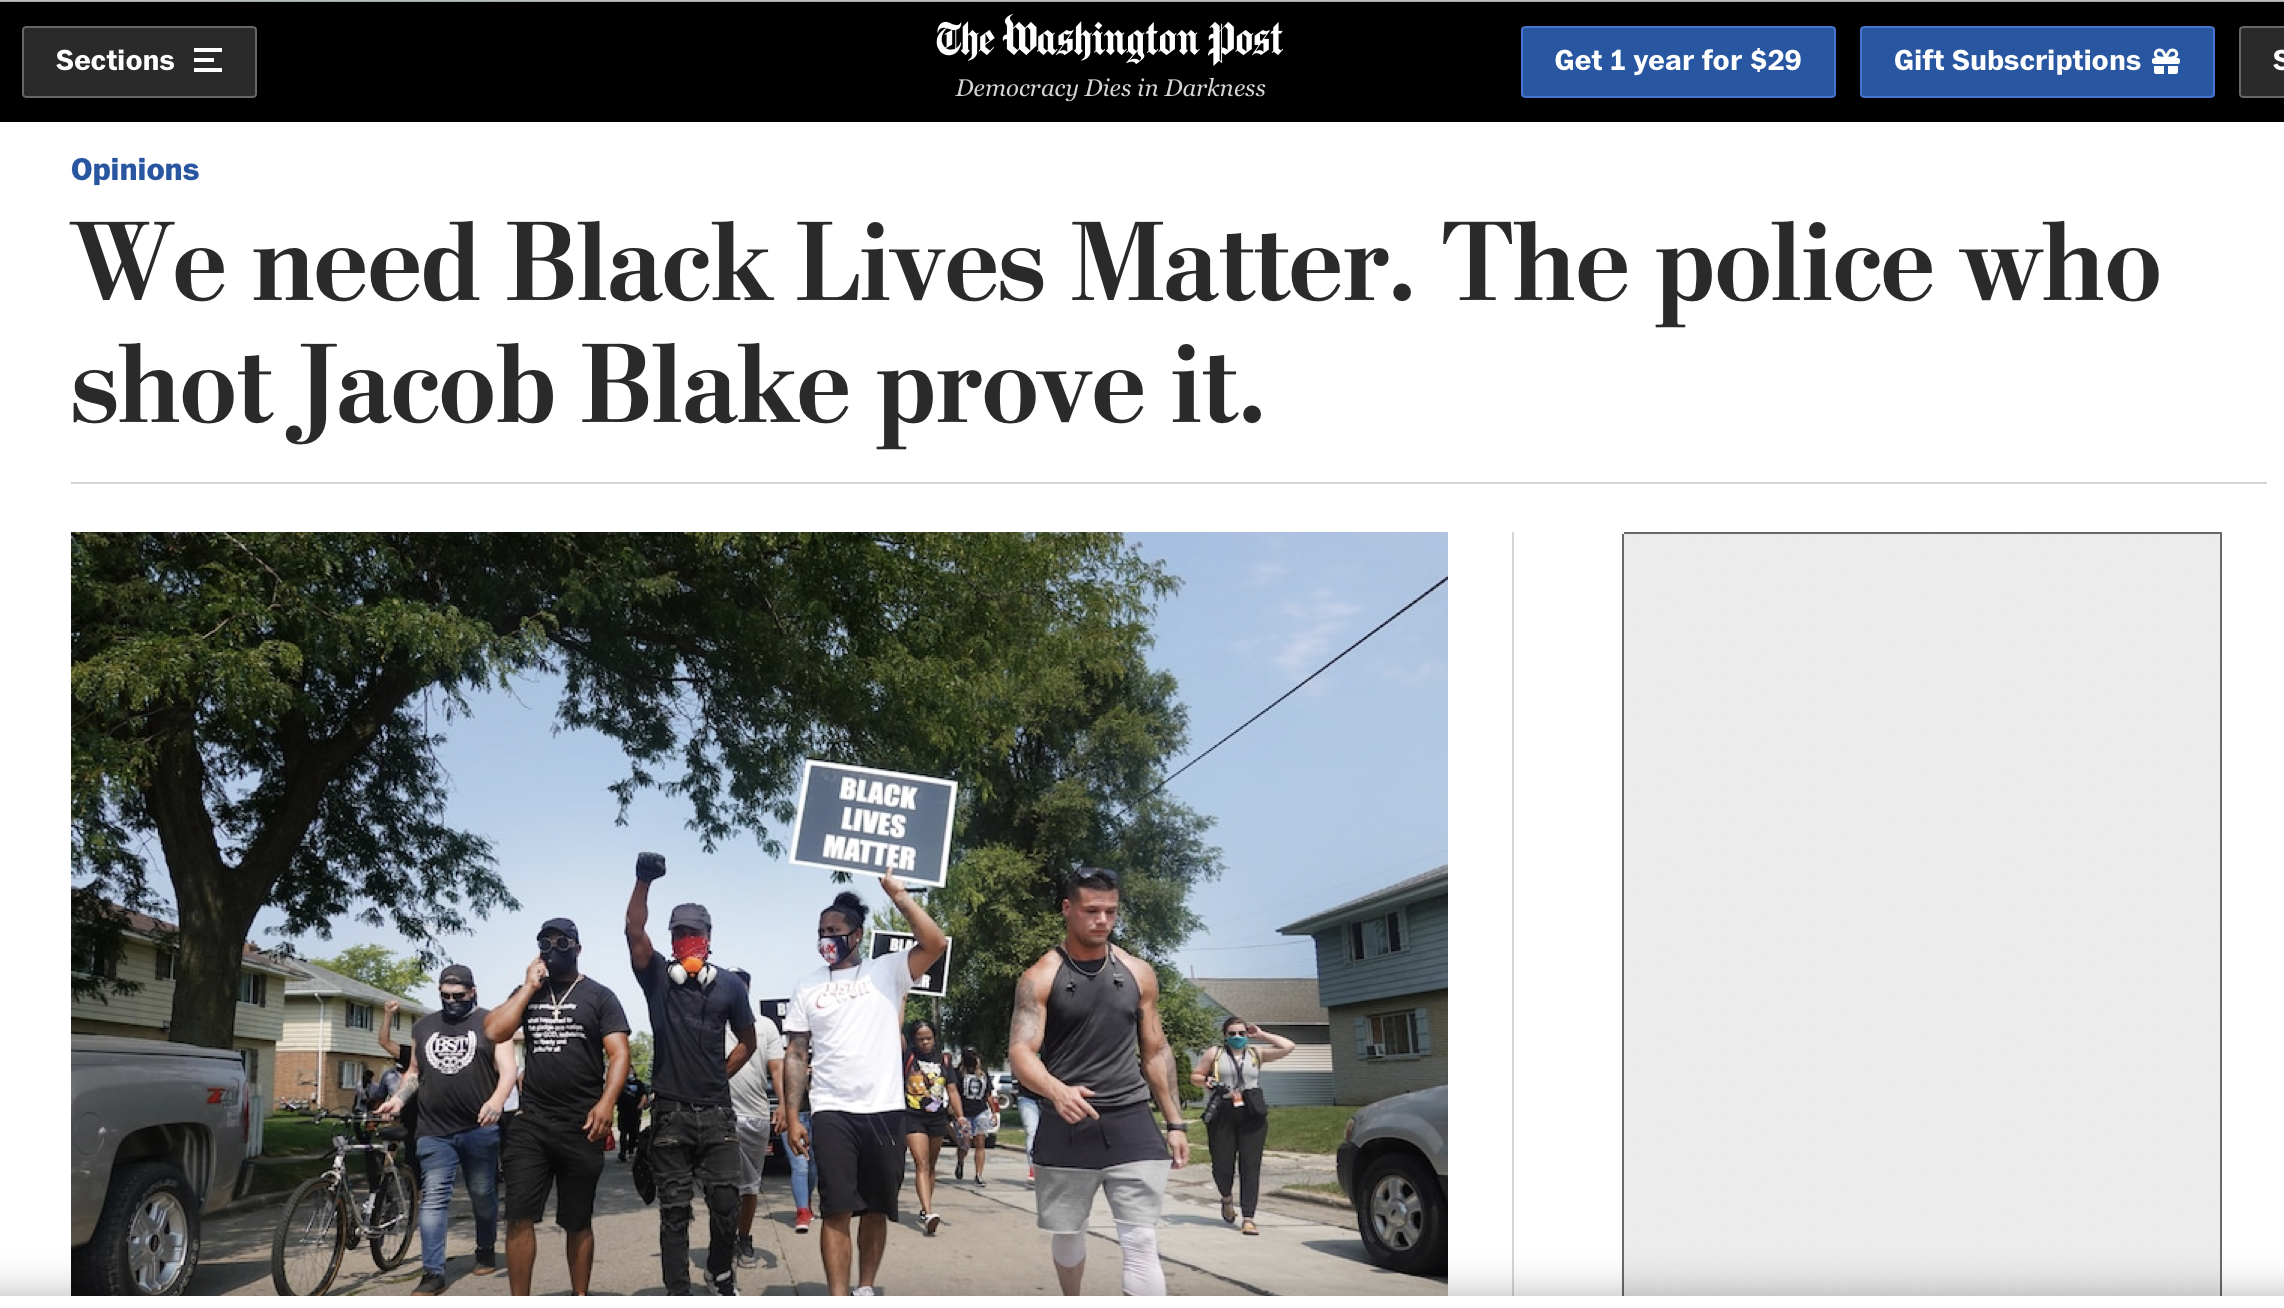 We need Black Lives Matter. The police who shot Jacob Blake prove it.